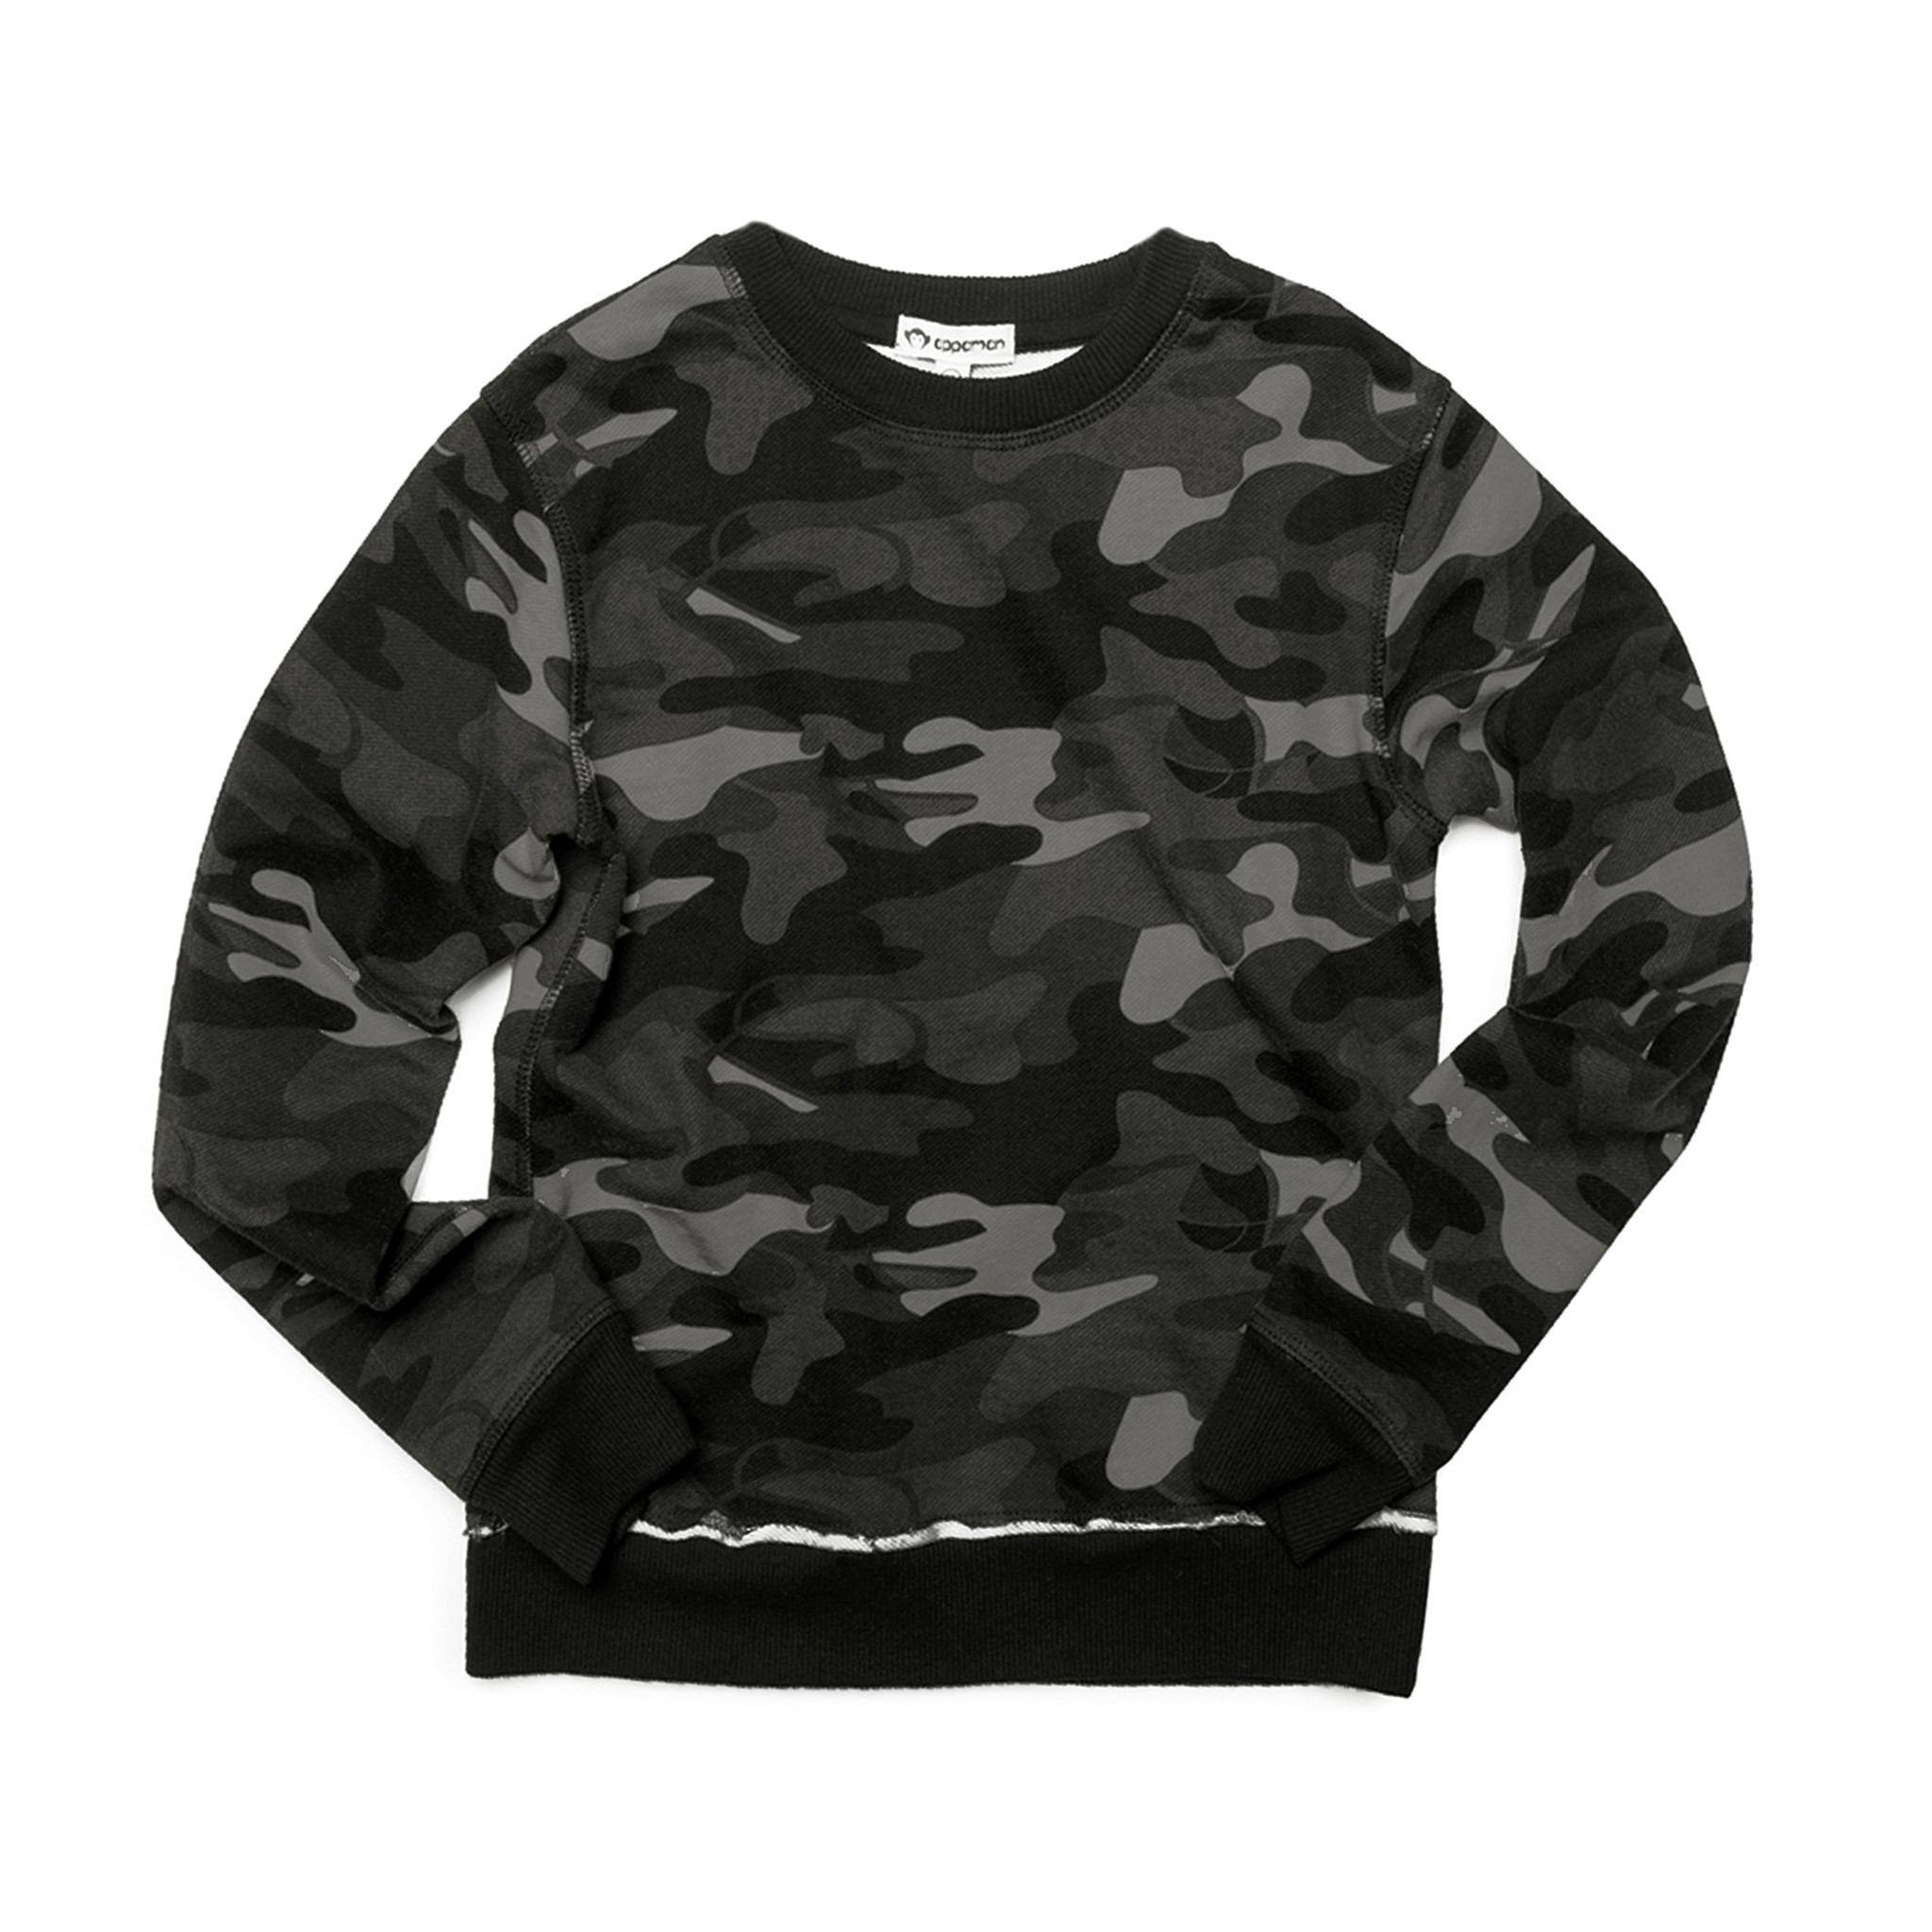 Appaman Carbon Camo Sweatshirt